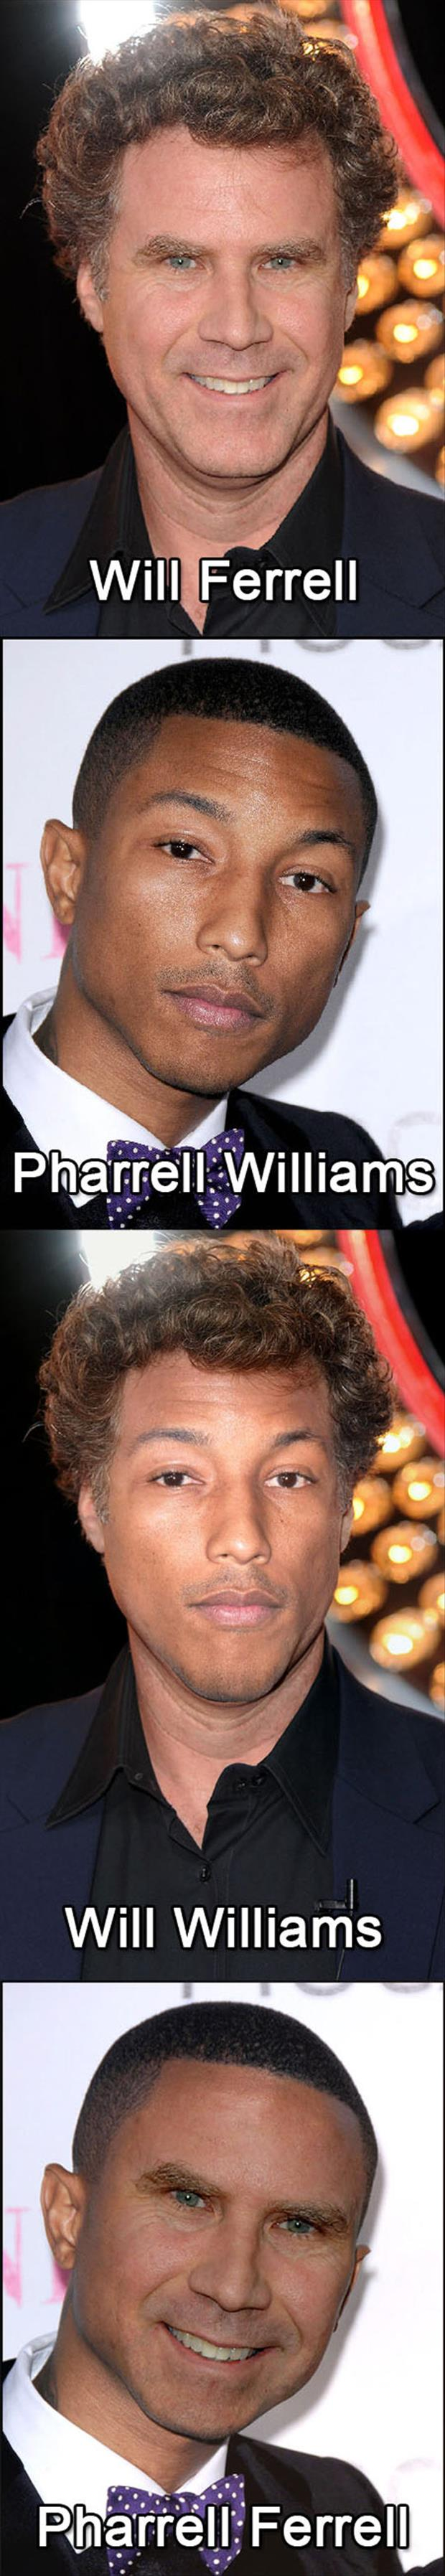 Will Ferrell And Pharrell Williams Morphed.